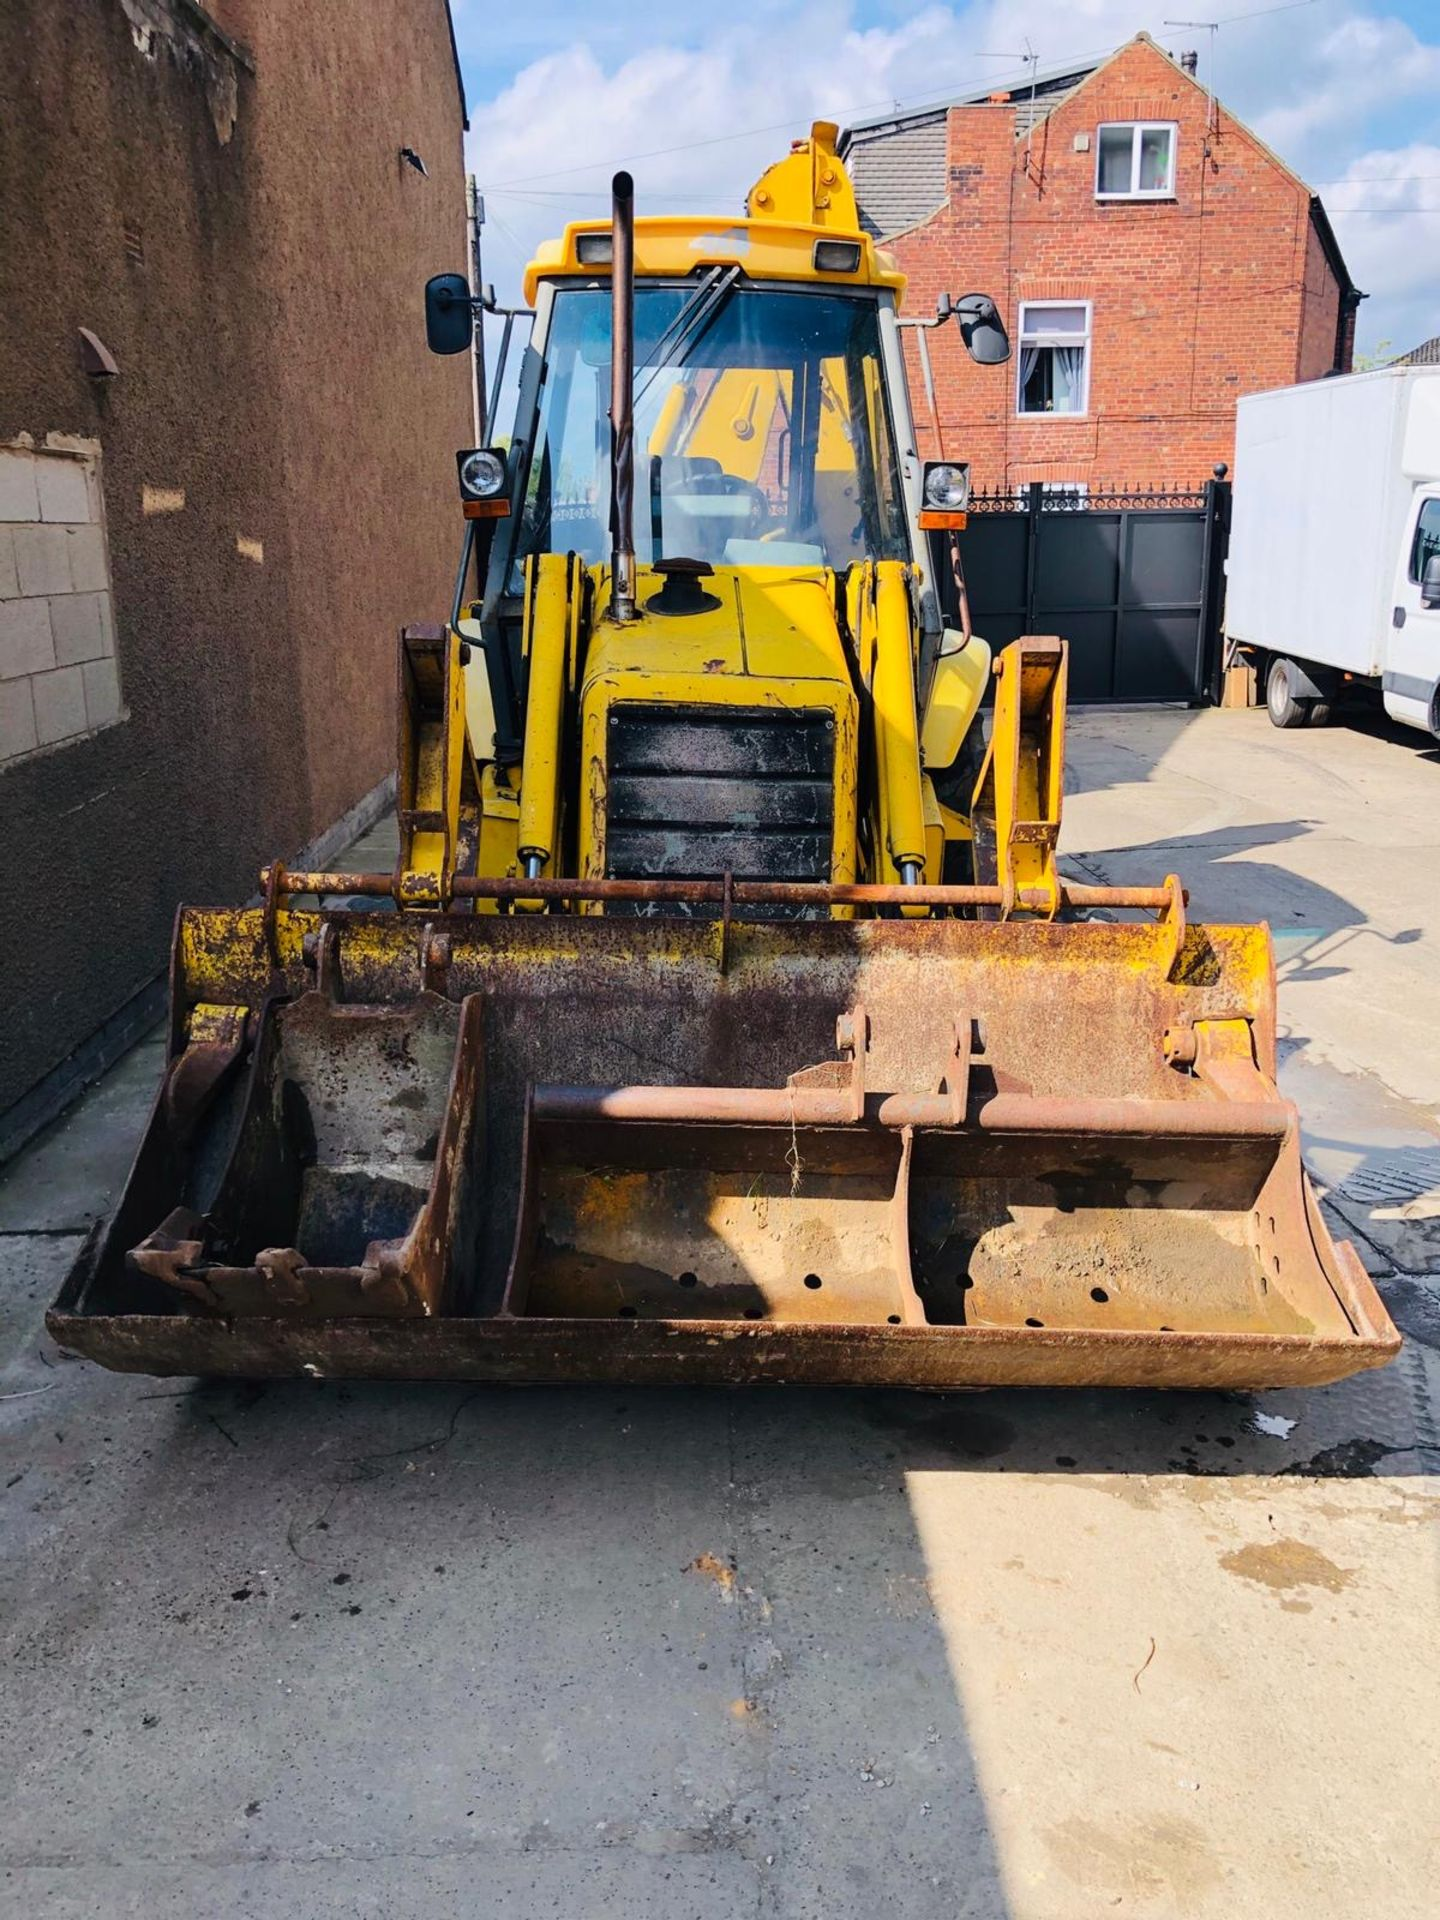 JCB 3CX PROJECT 8 DIGGER, 4X4, EXTRA DIG, C/W 3 BUCKETS, HOURS FROM NEW 7434 ONLY *NO VAT* - Image 2 of 16